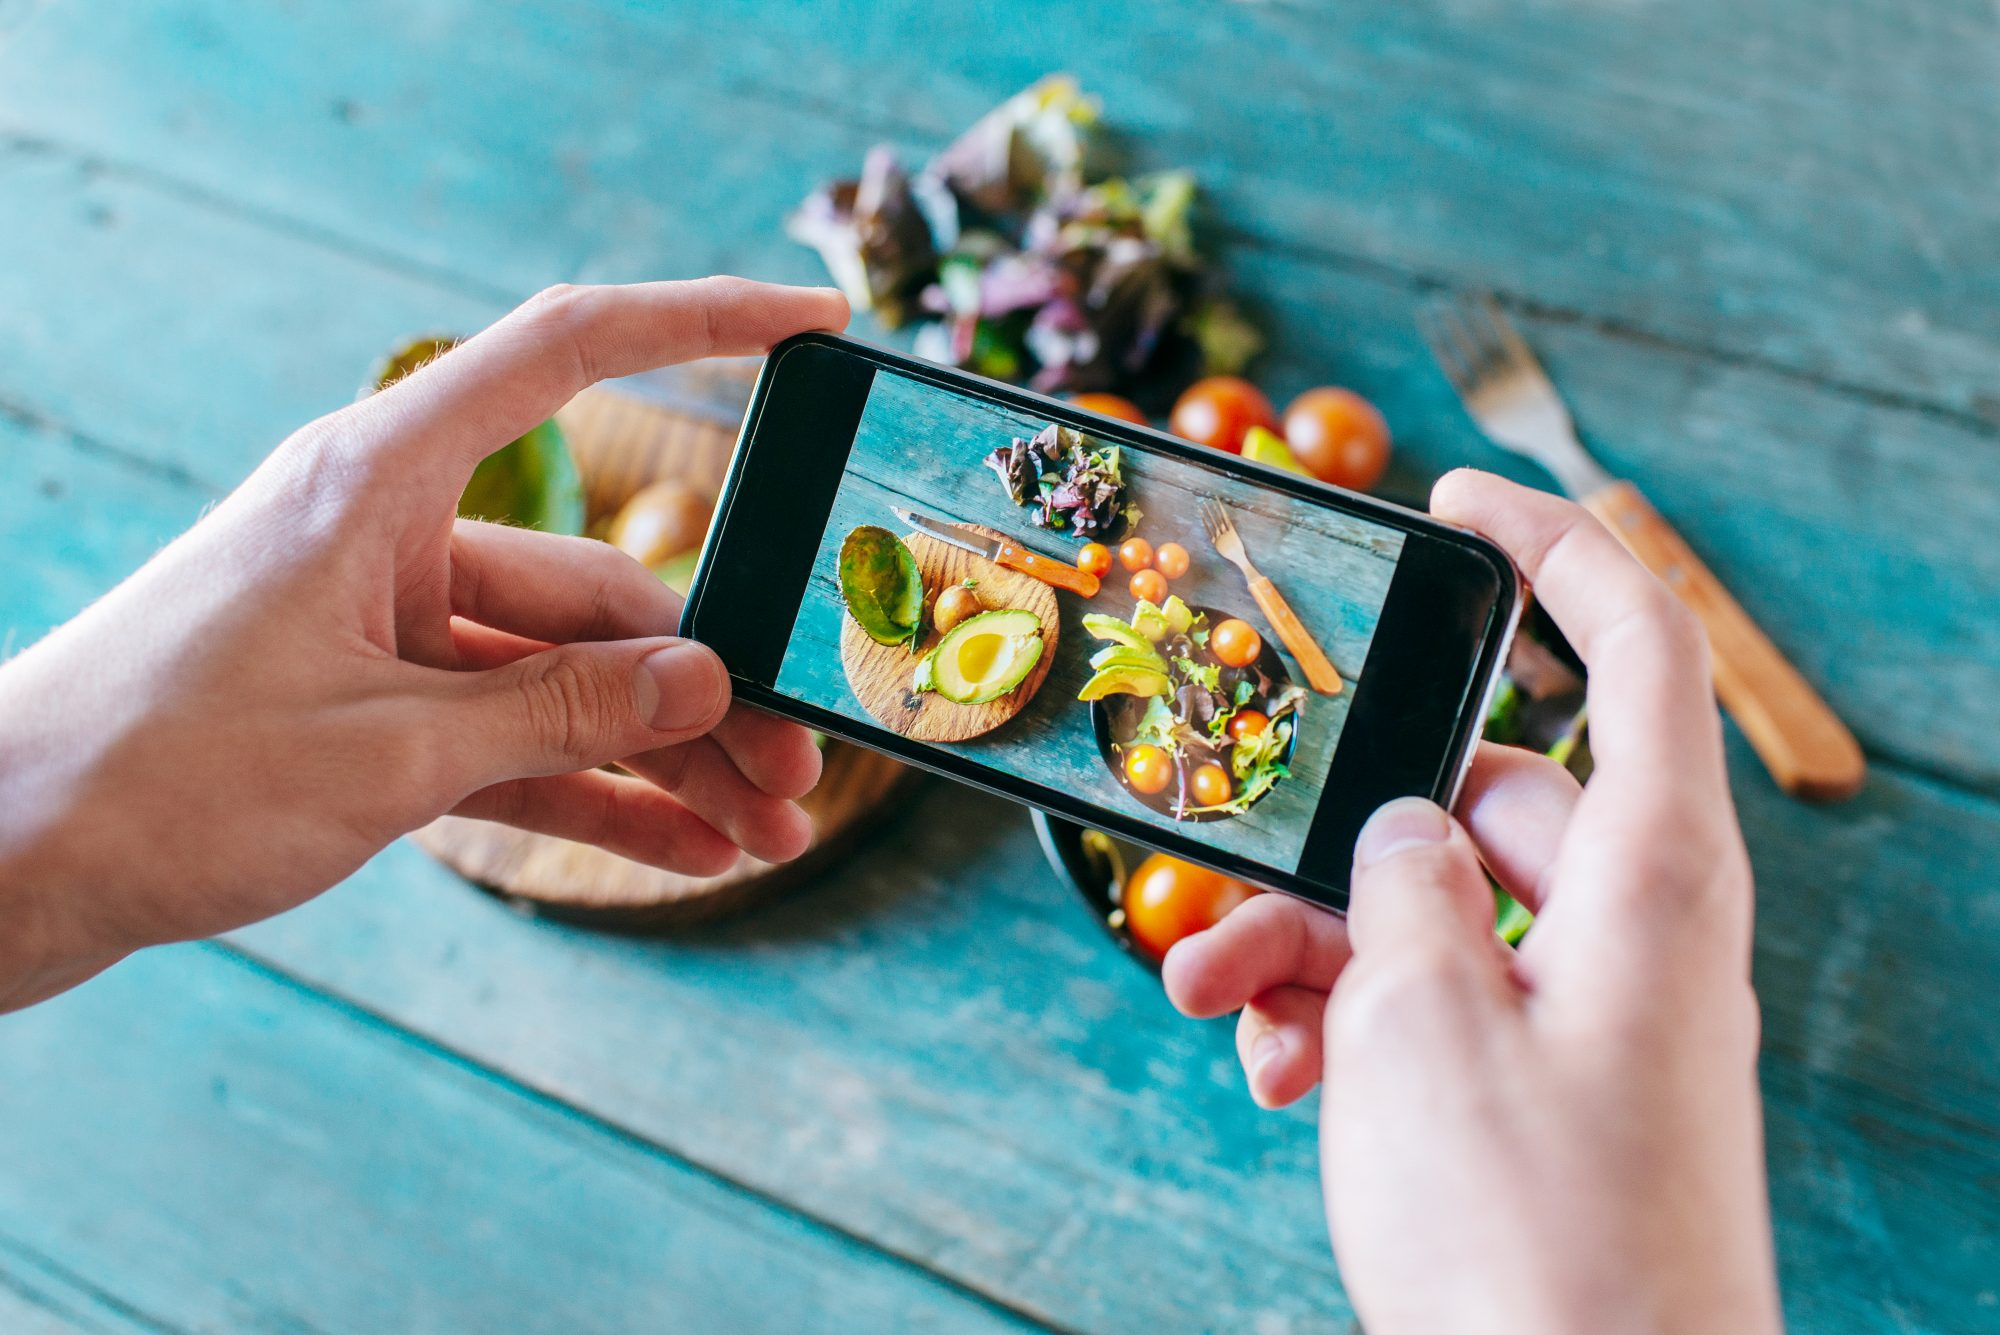 person taking a photo of their food with cell phone